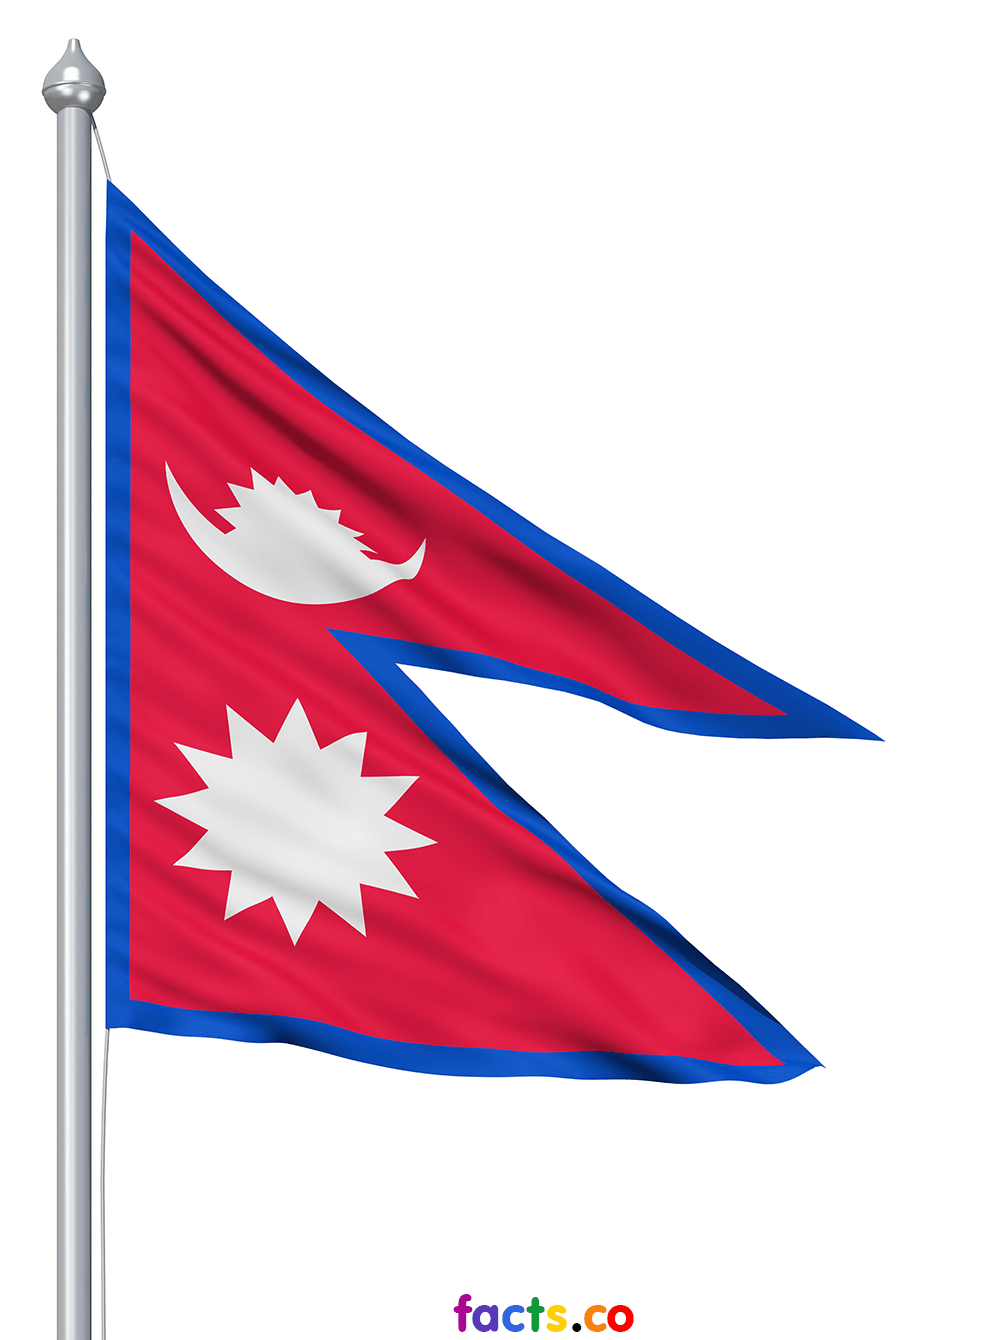 Square flag background. Illustration of flag of Nepal